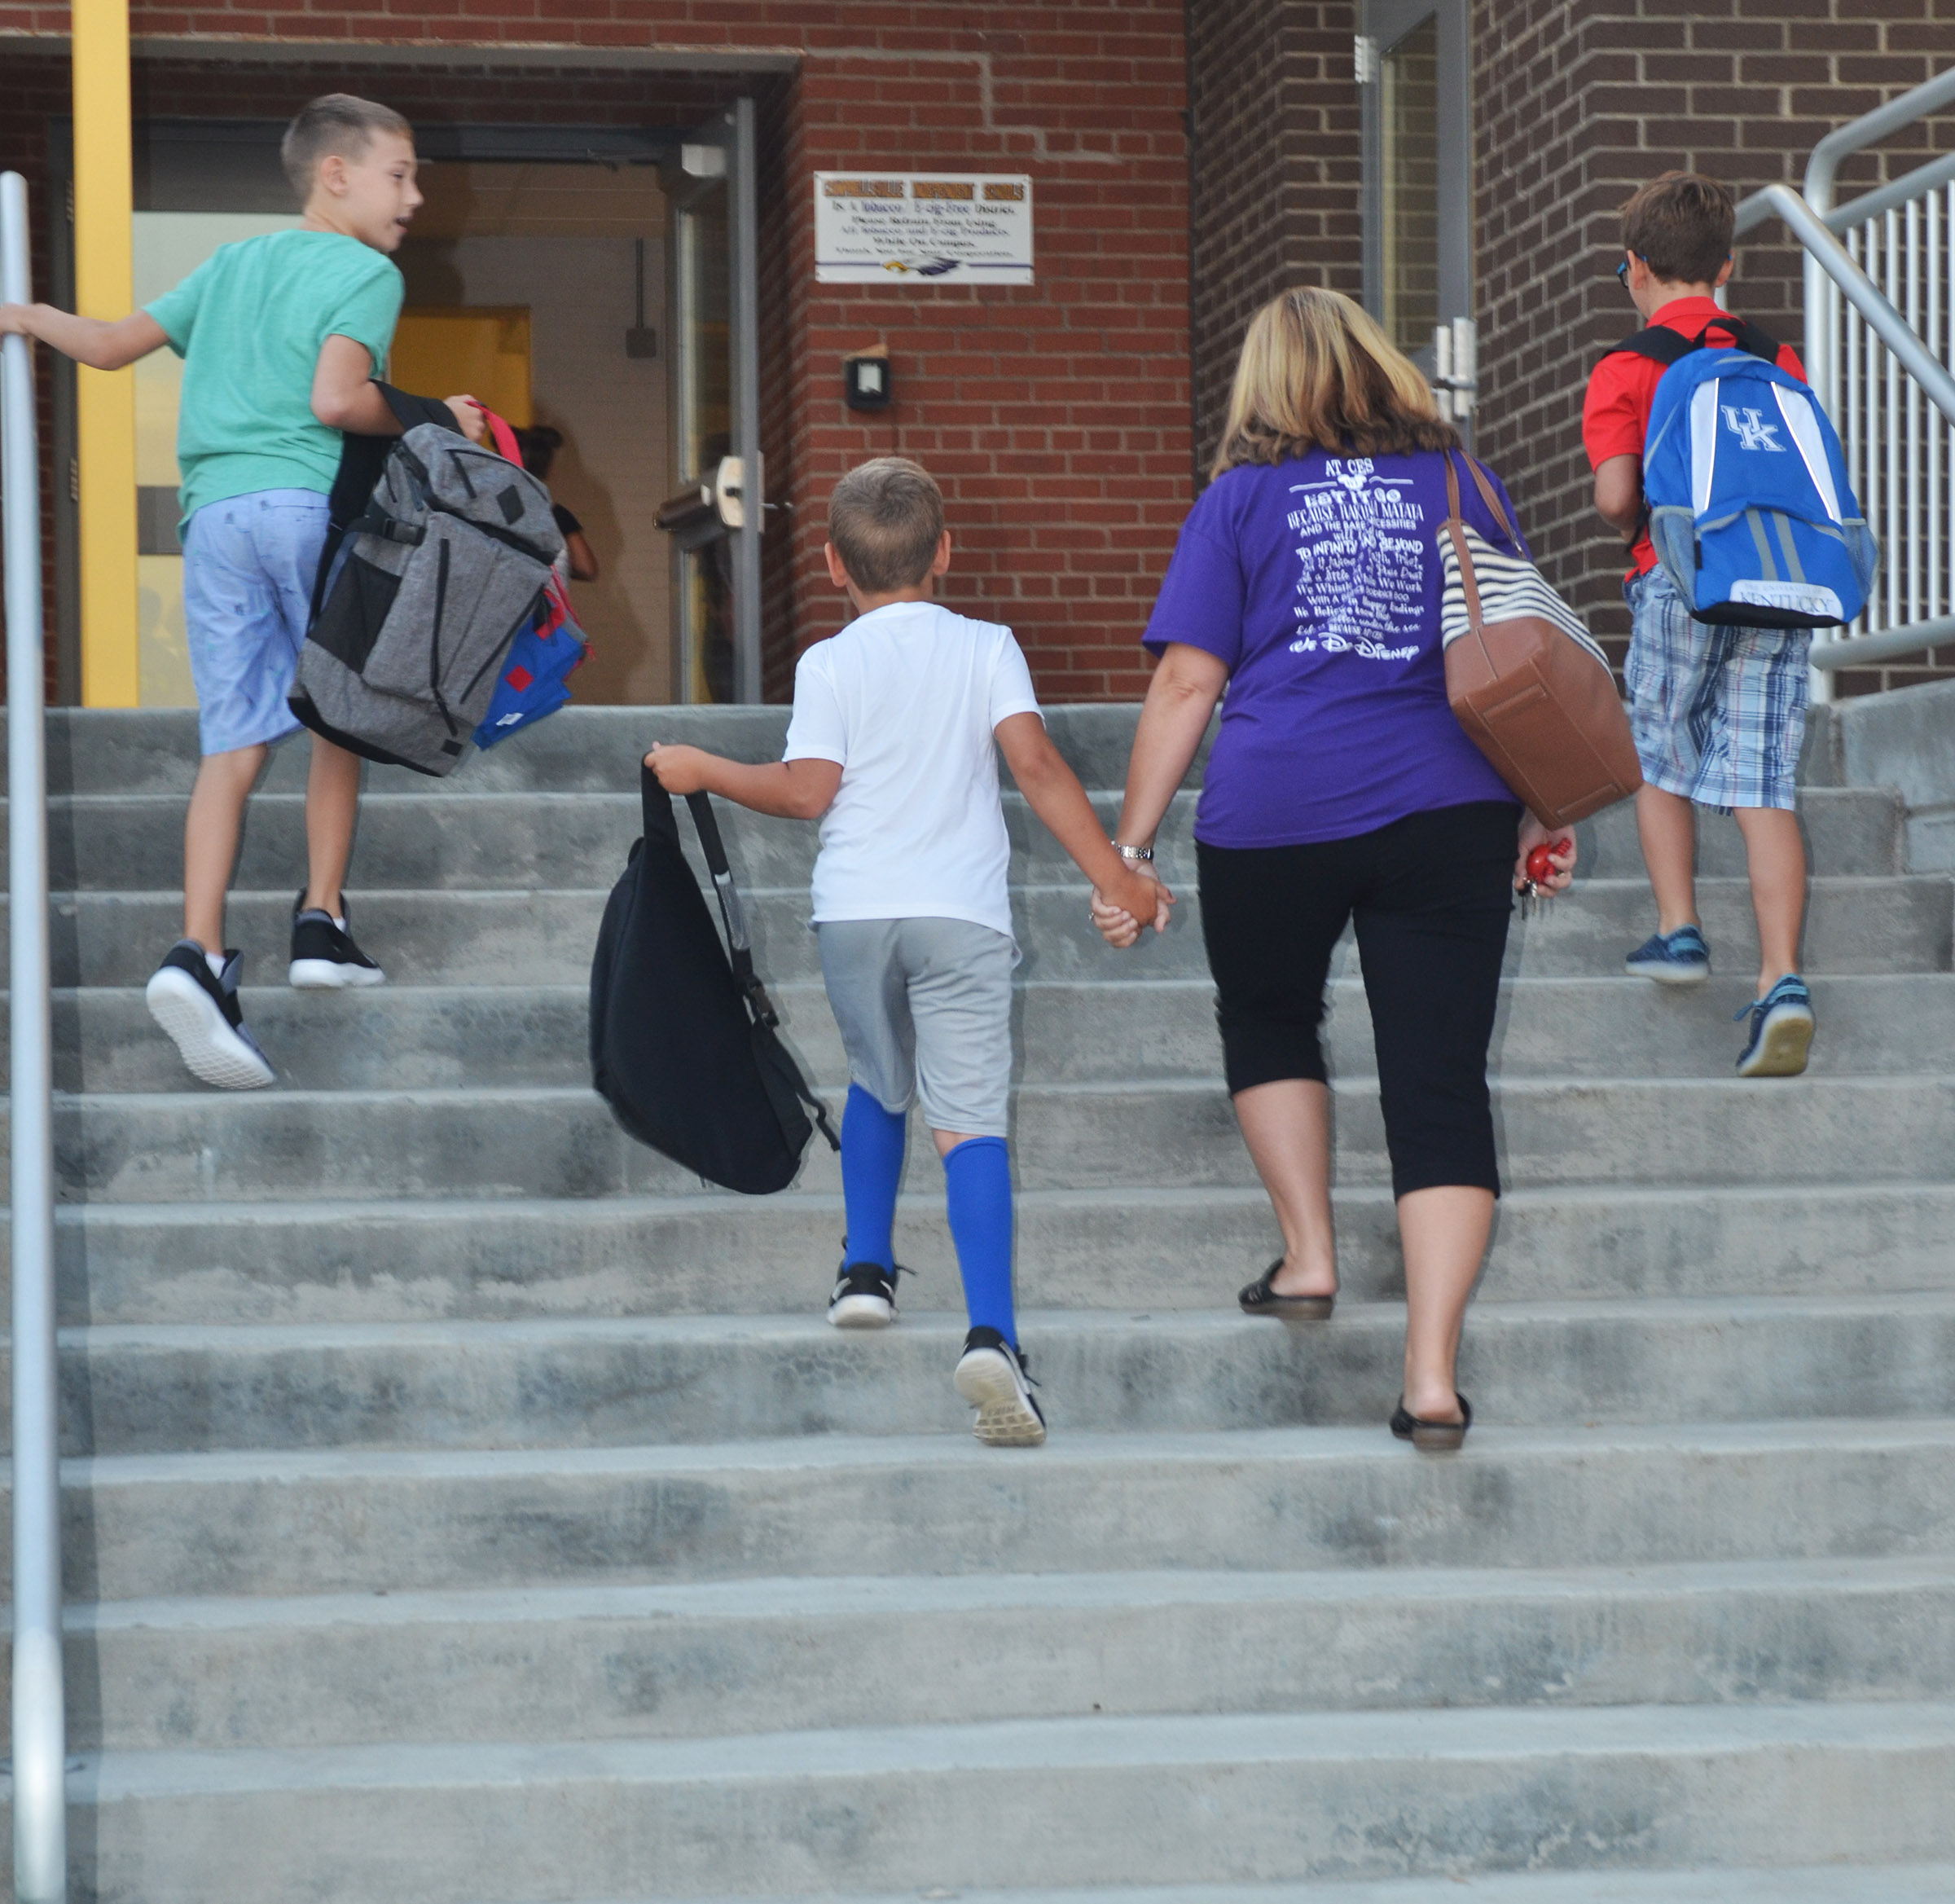 CES Guidance Counselor Sonya Orberson walks into school with, from left, third-grader Aidan Wilson, first-grader Braxton Rhodes and third-grader Tye Rhodes.